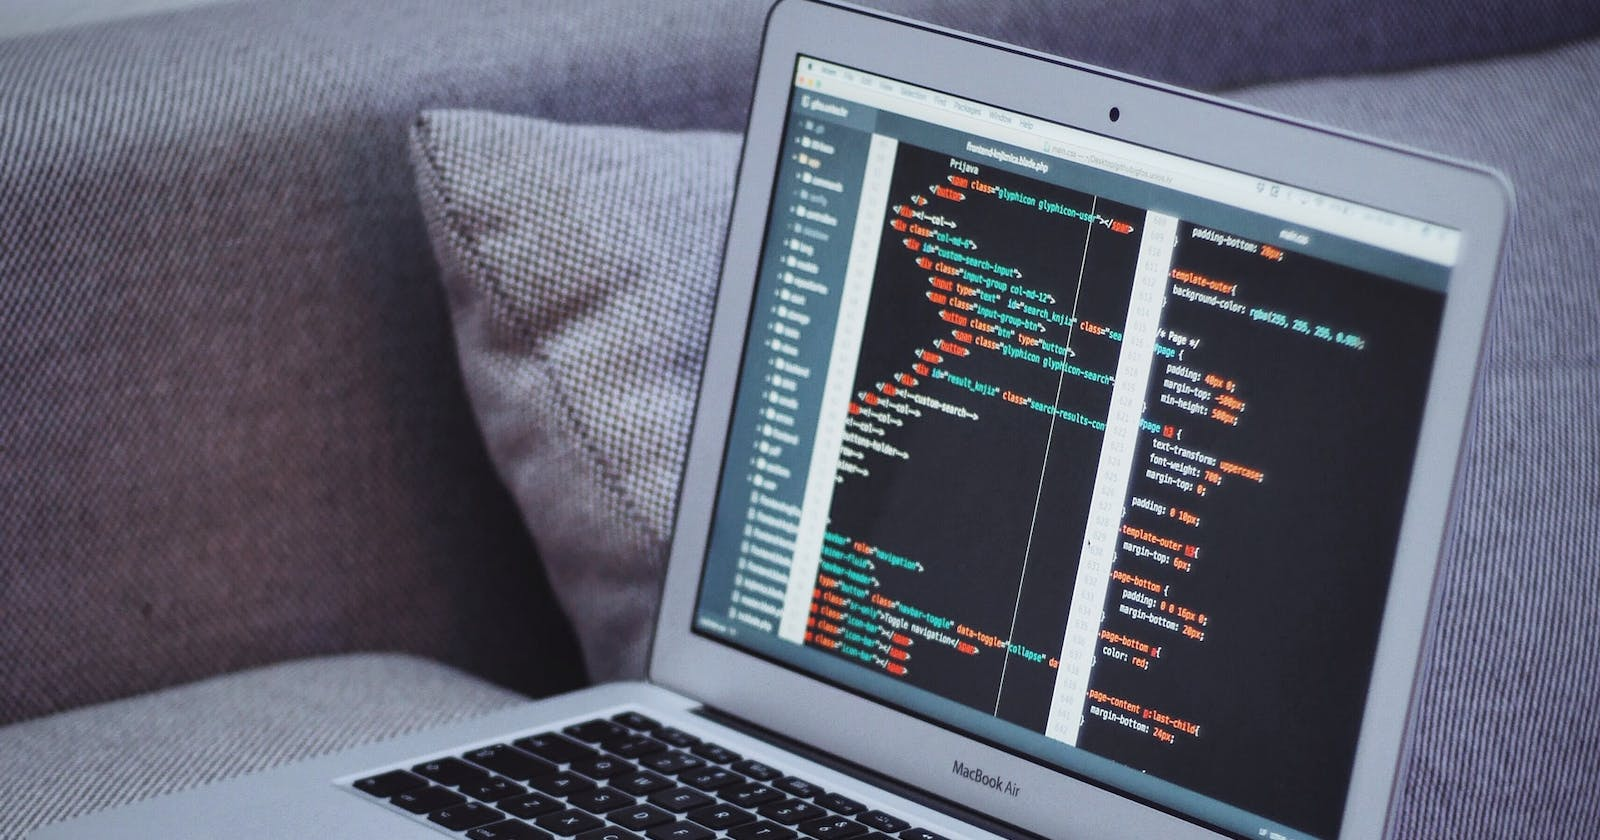 Learn HTML in Five minutes